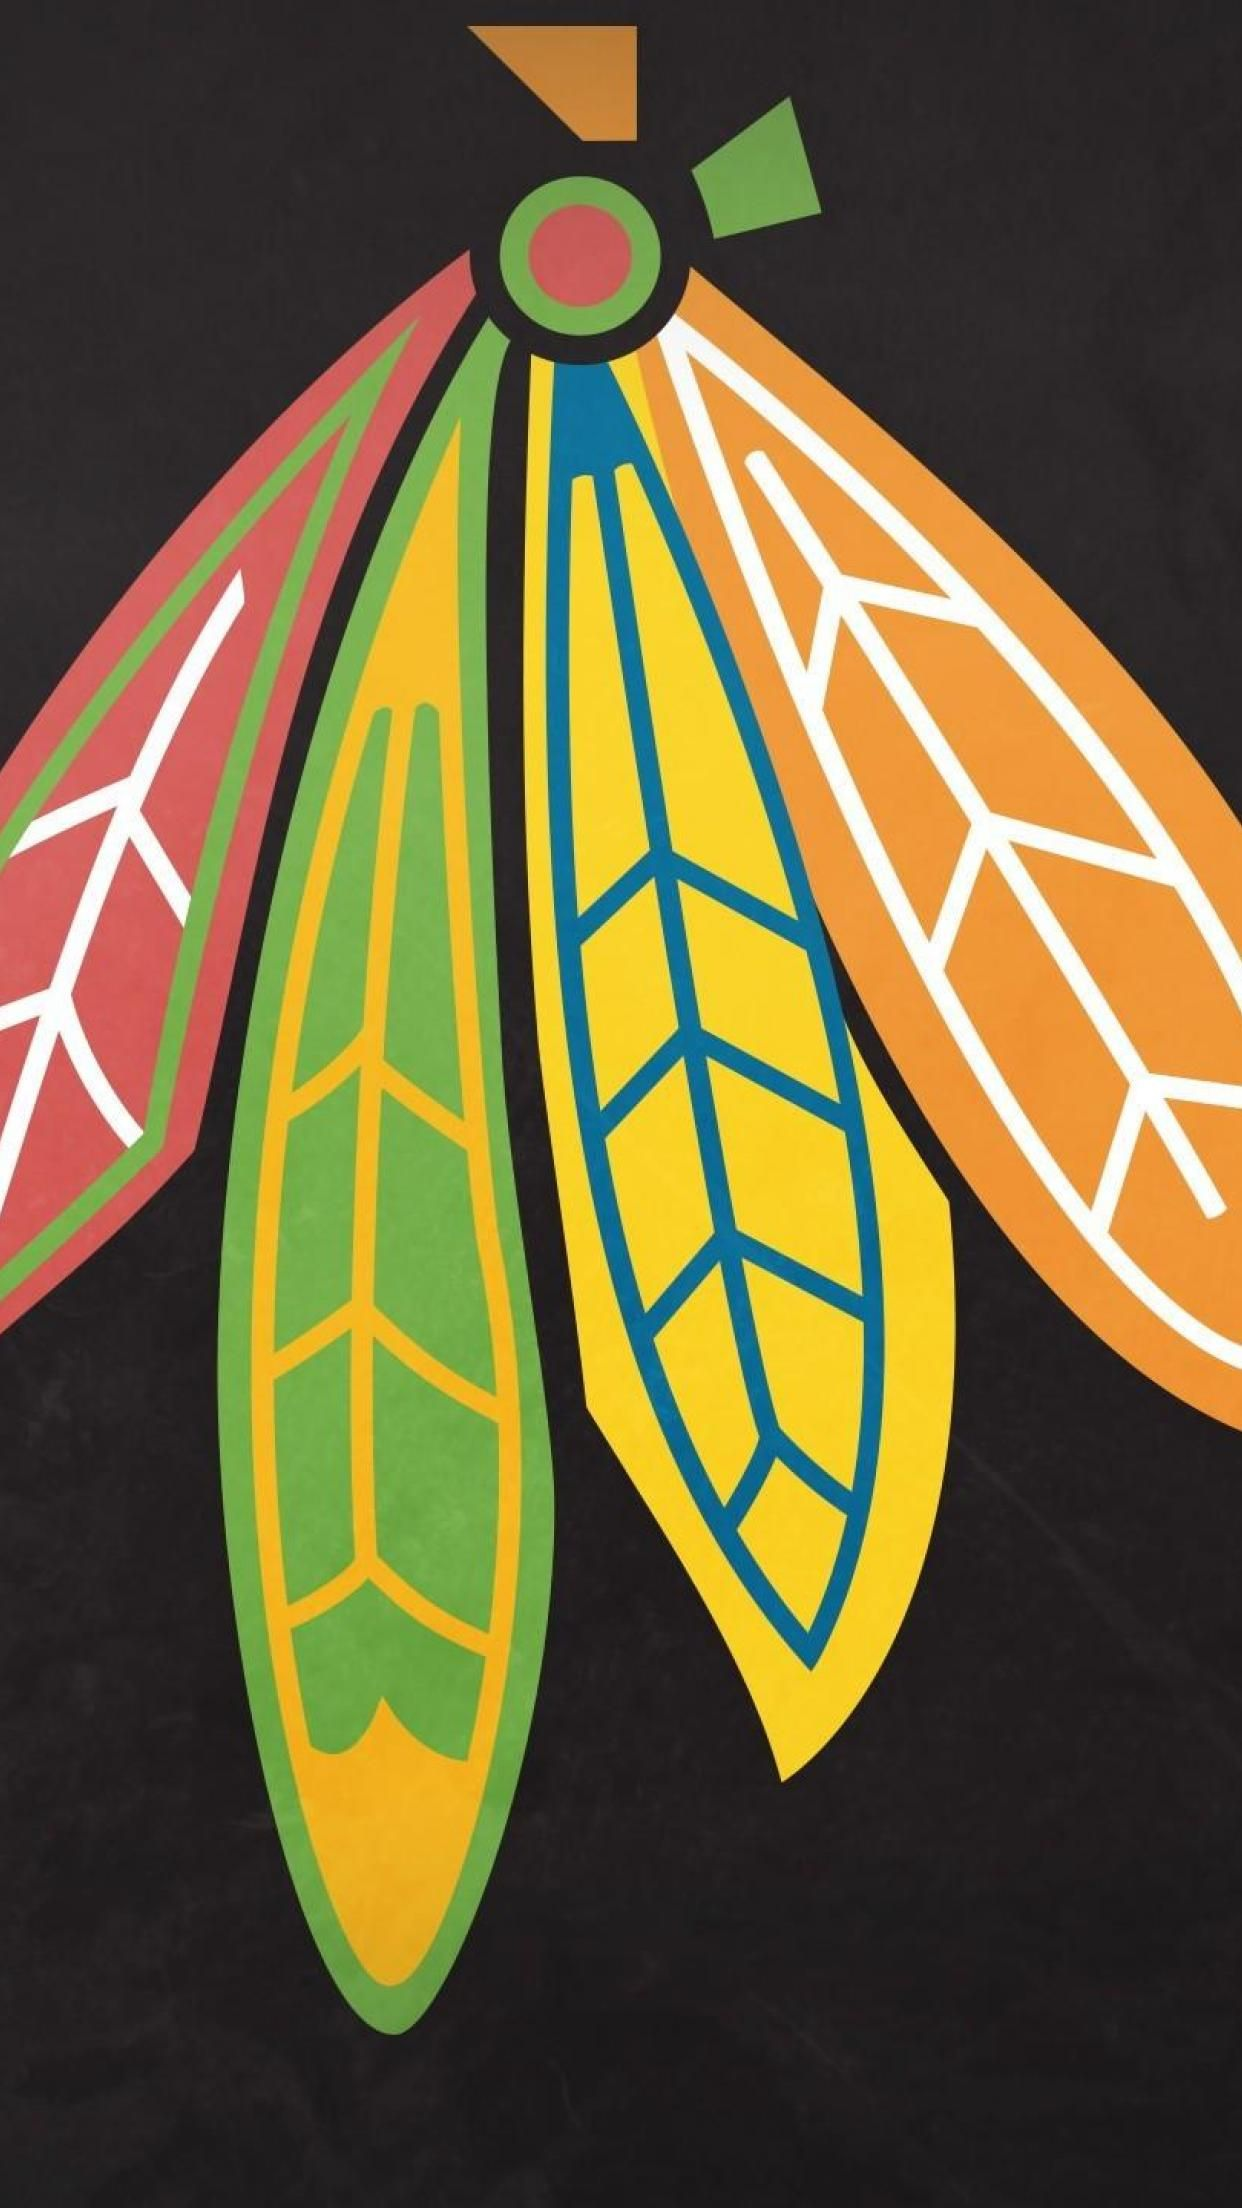 Chicago Blackhawks Wallpaper For Iphone Chicago Blackhawks Wallpaper Chicago Blackhawks Logo Sports Wallpapers